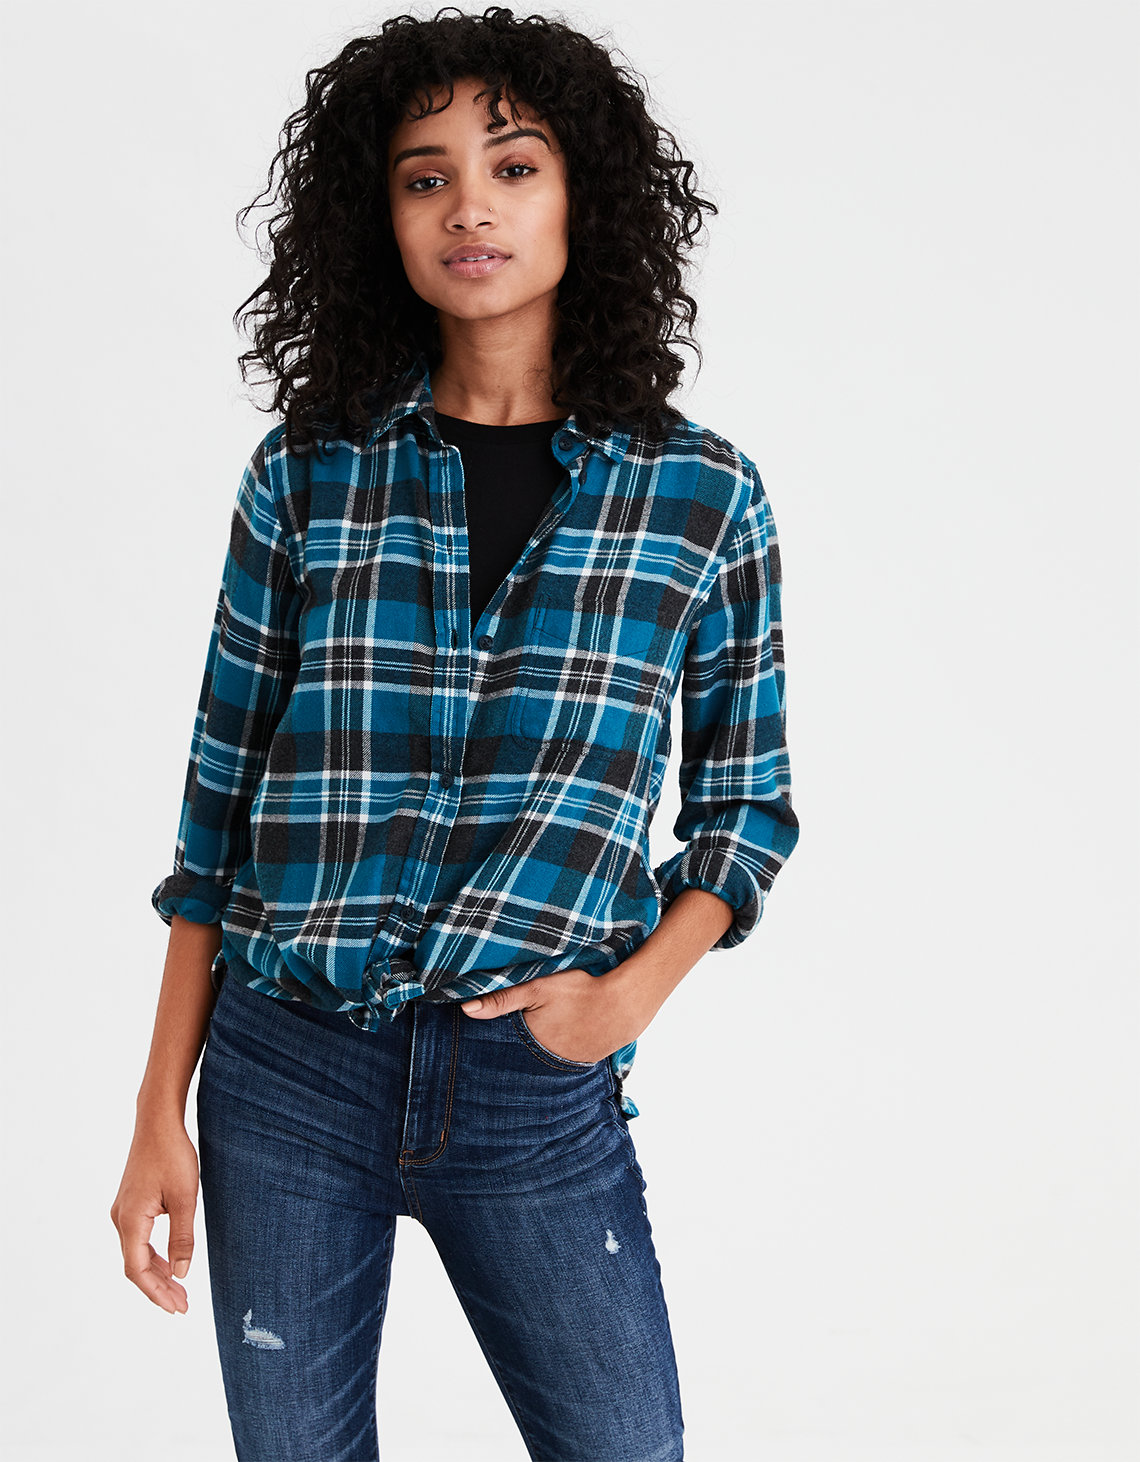 ba1d3b7a52 AE Ahhmazingly Soft Plaid Boyfriend Shirt. Placeholder image. Product Image